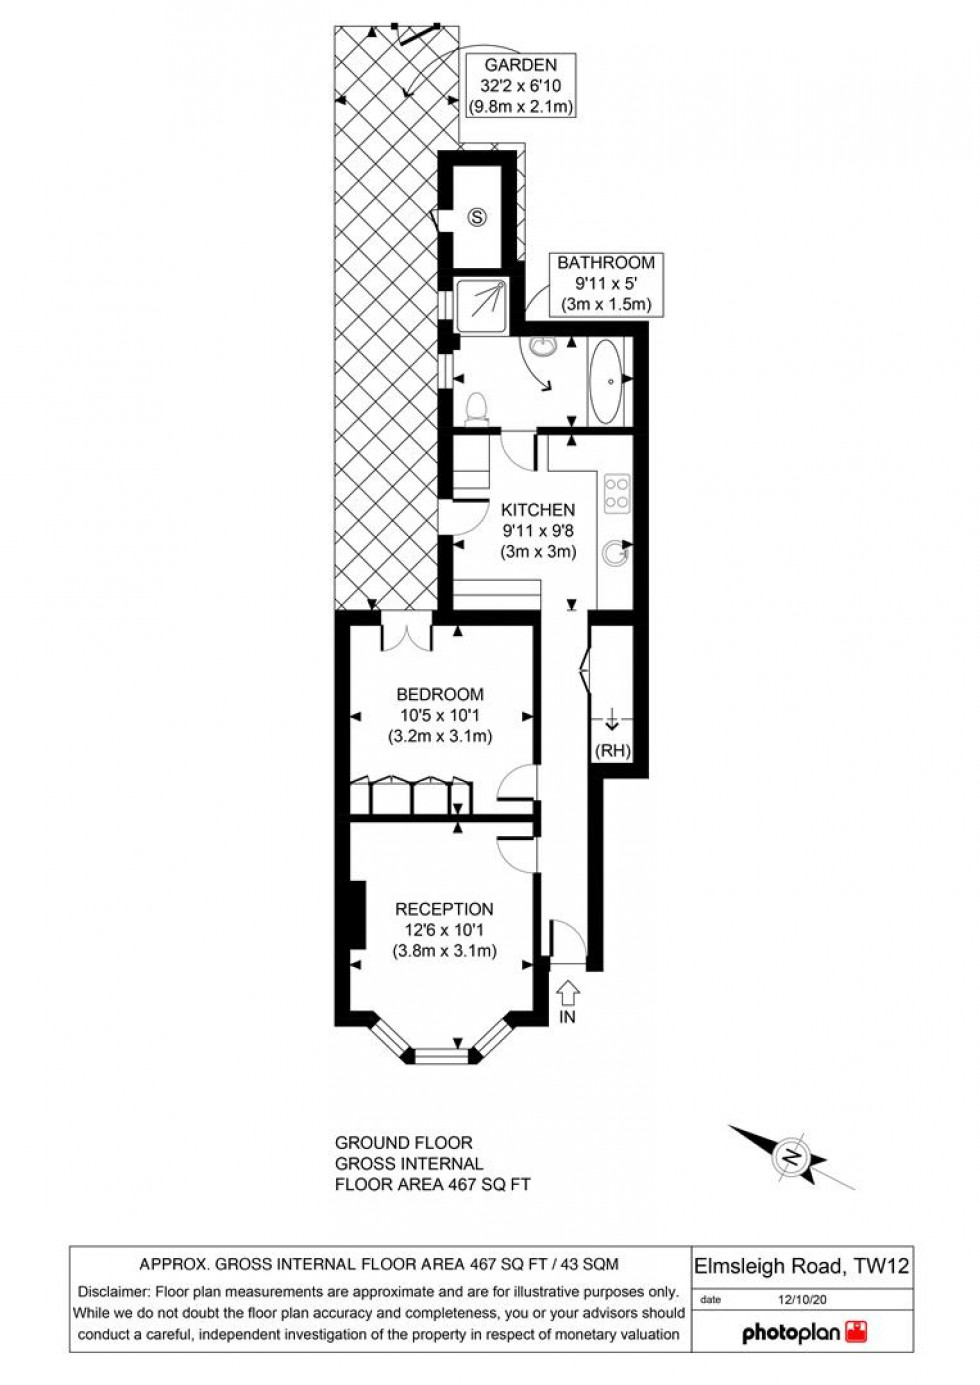 Floorplan for Elmsleigh Road, Twickenham